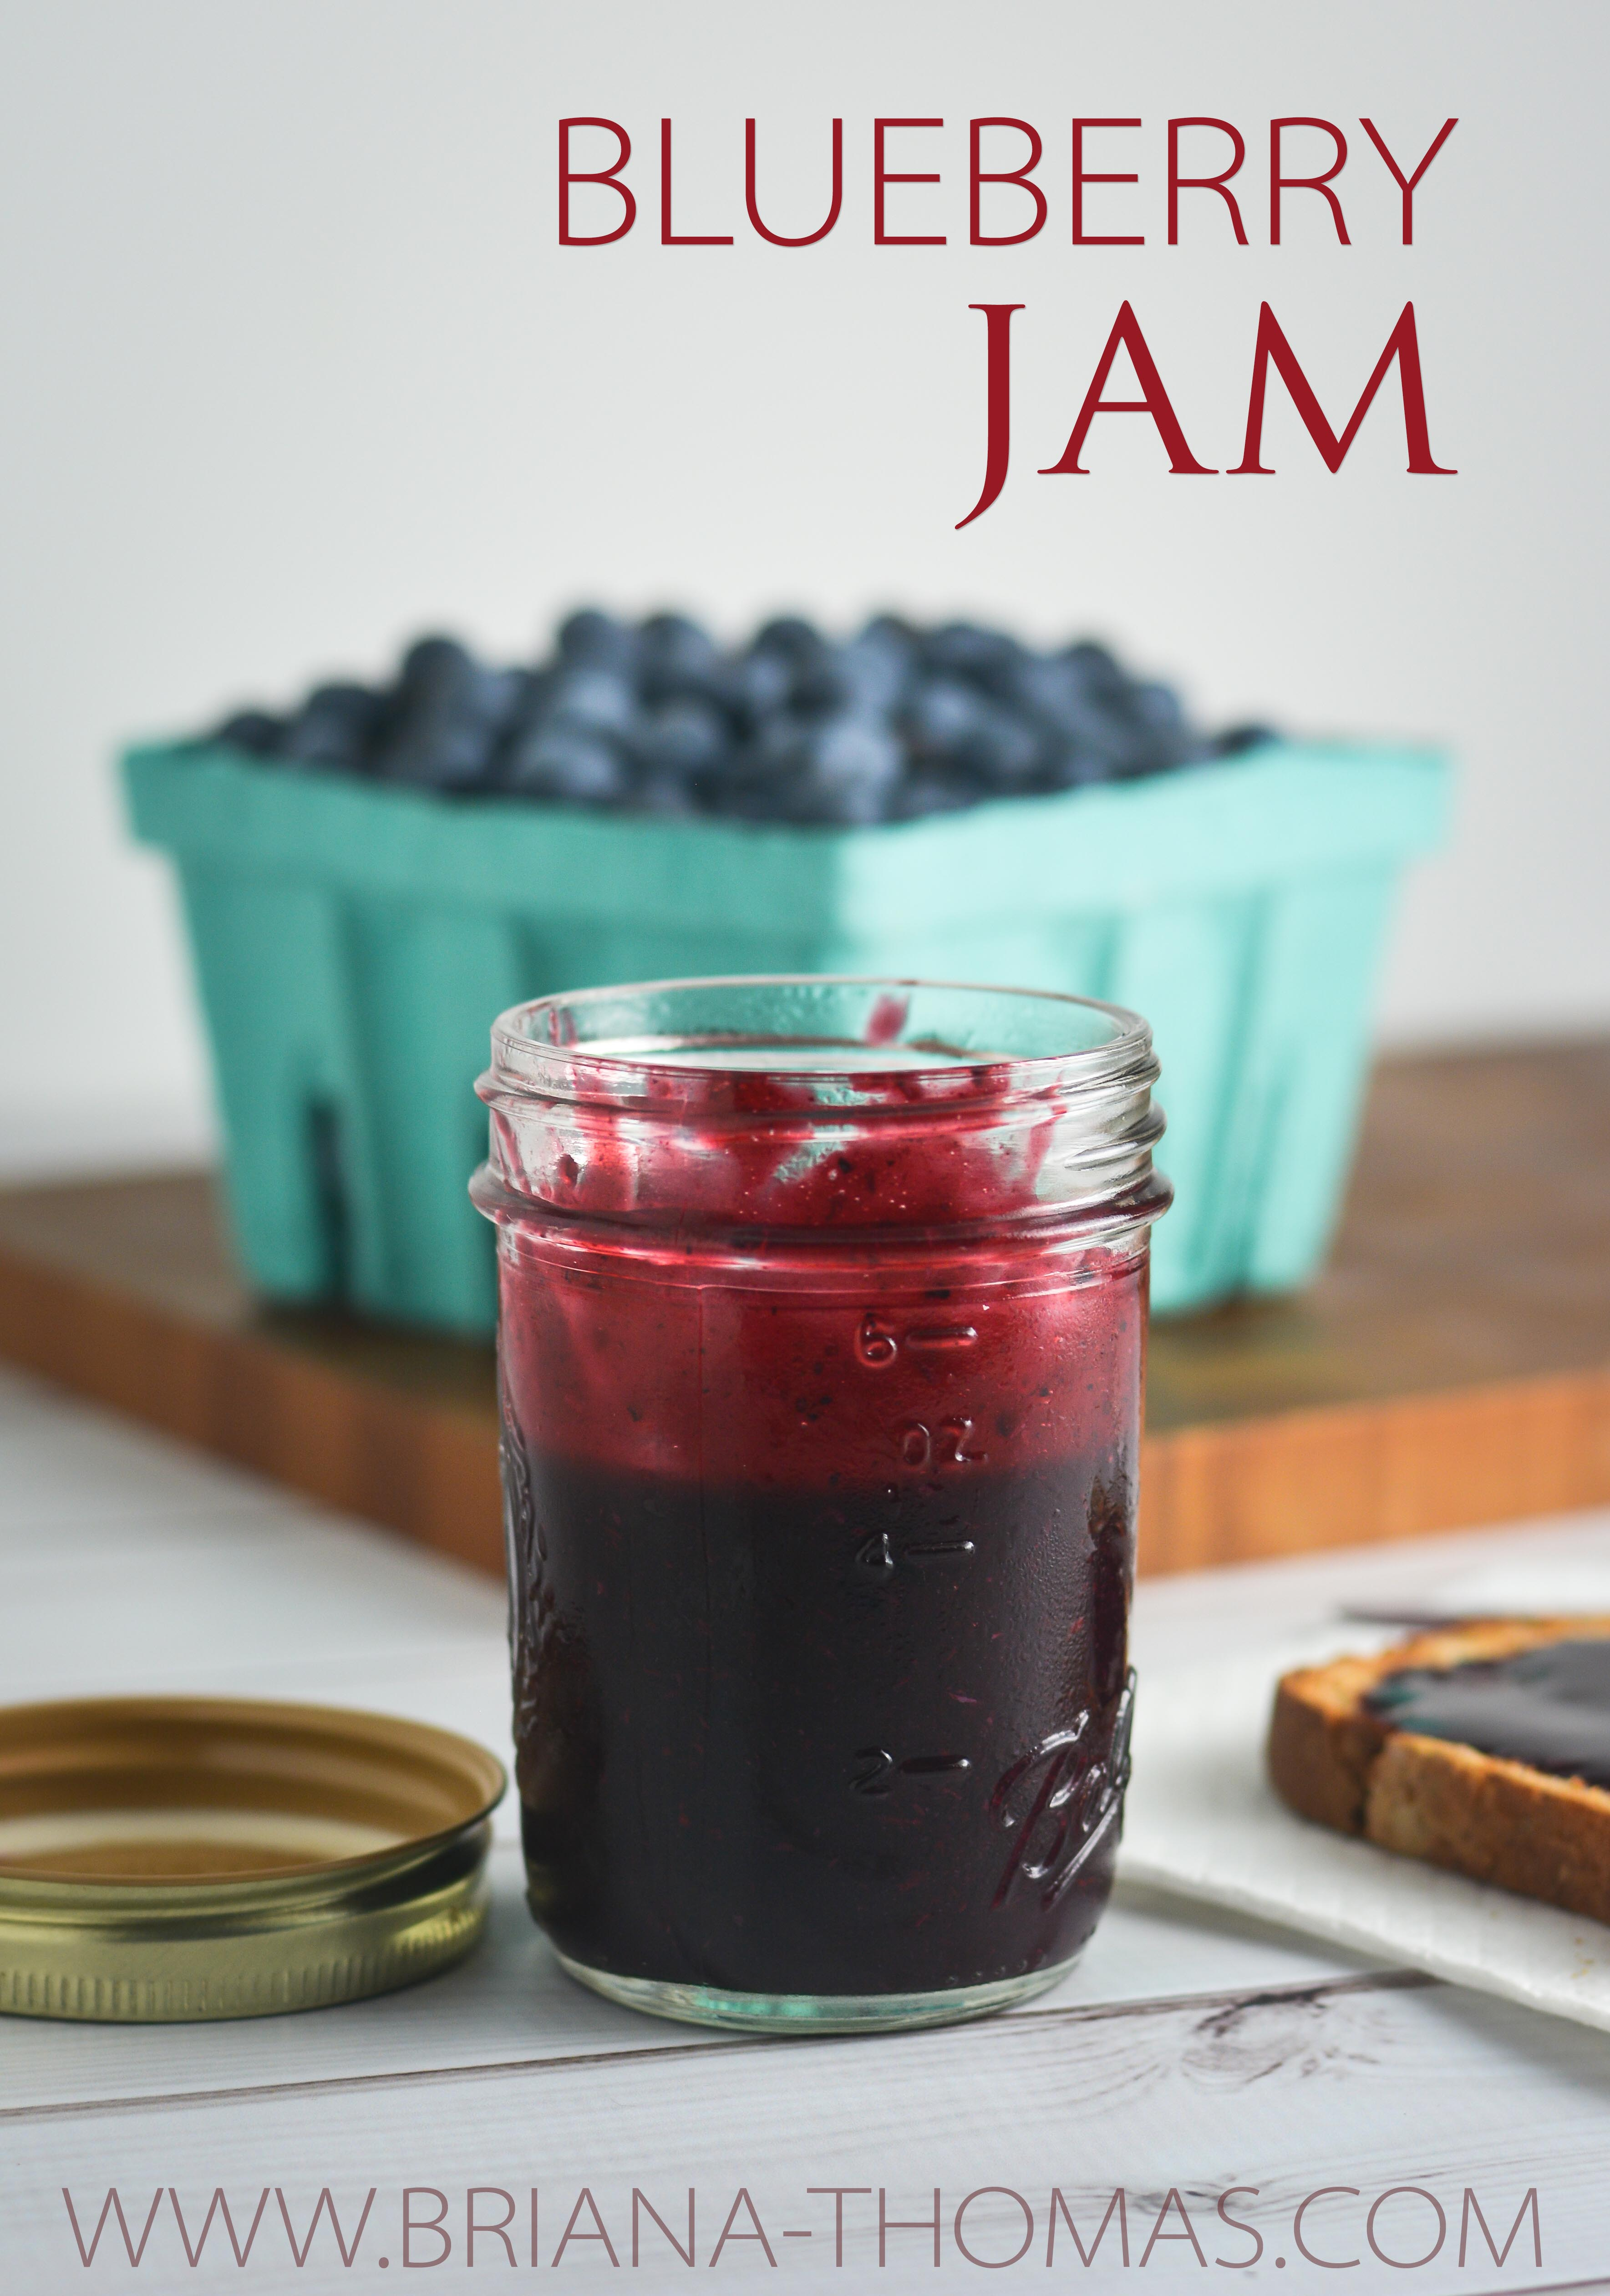 This Blueberry Jam is easy to make and keeps well in the freezer! THM: FP, low carb, low fat, no sugar added, gluten free, egg free, dairy free, nut free